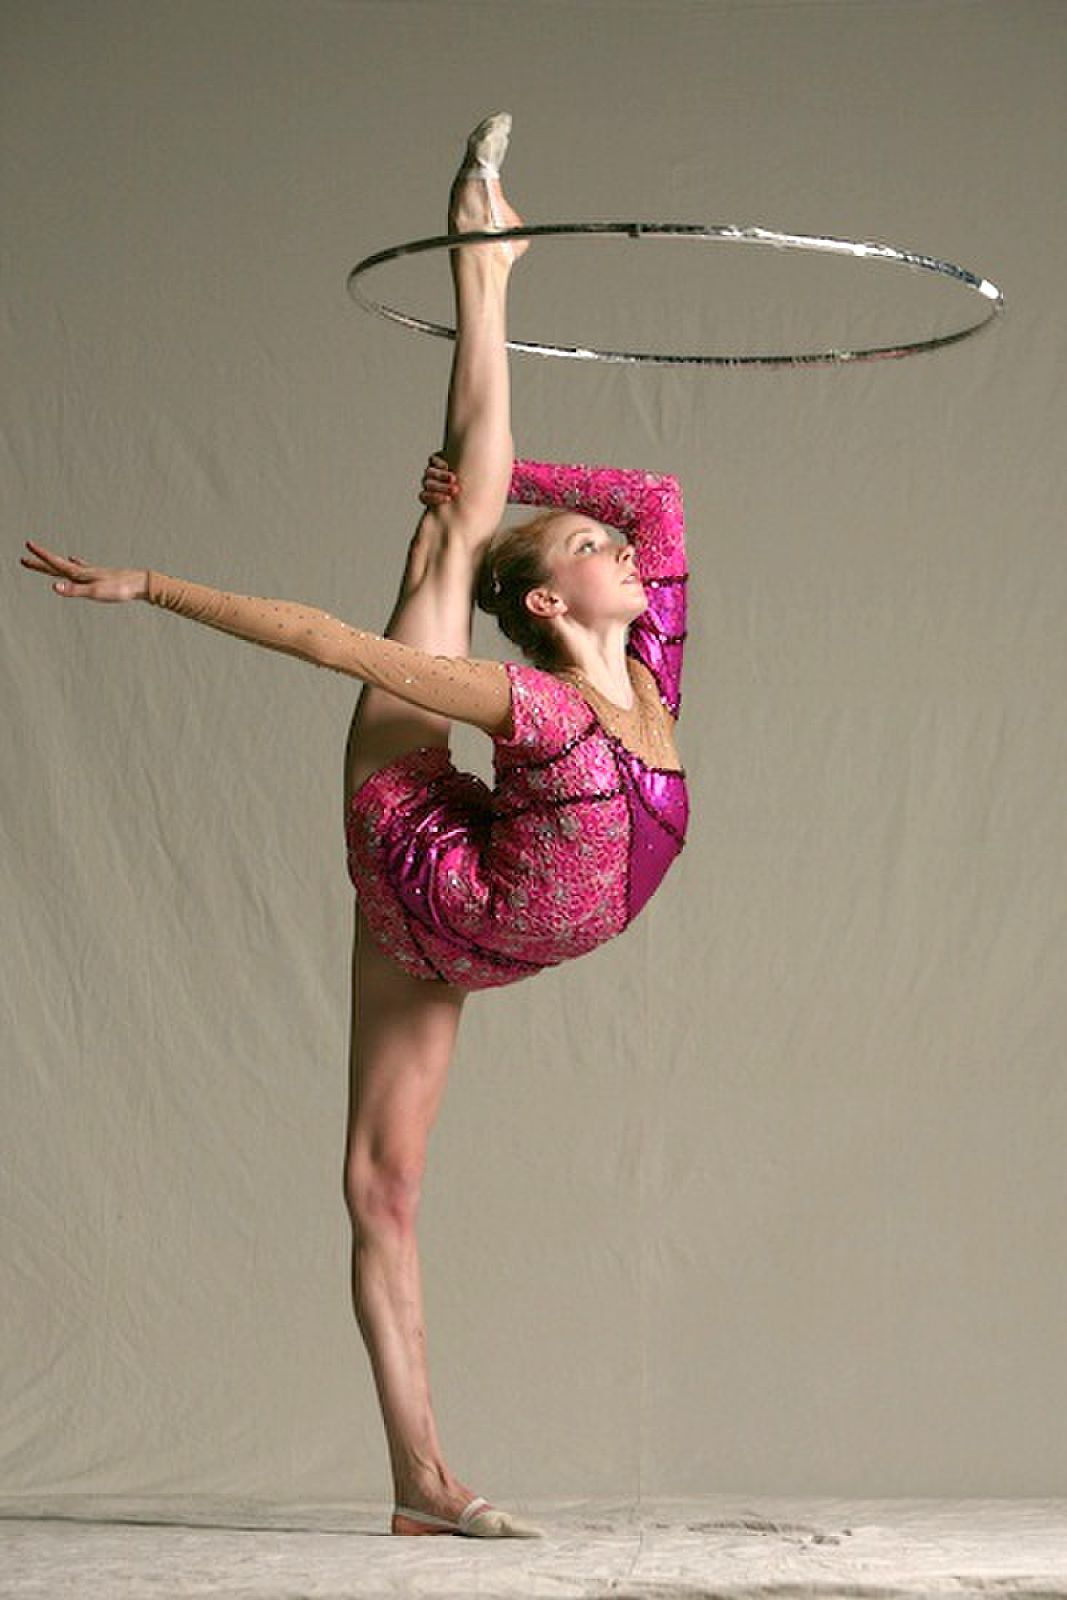 seventh annual boston cup invitational hosts rhythmic gymnastics